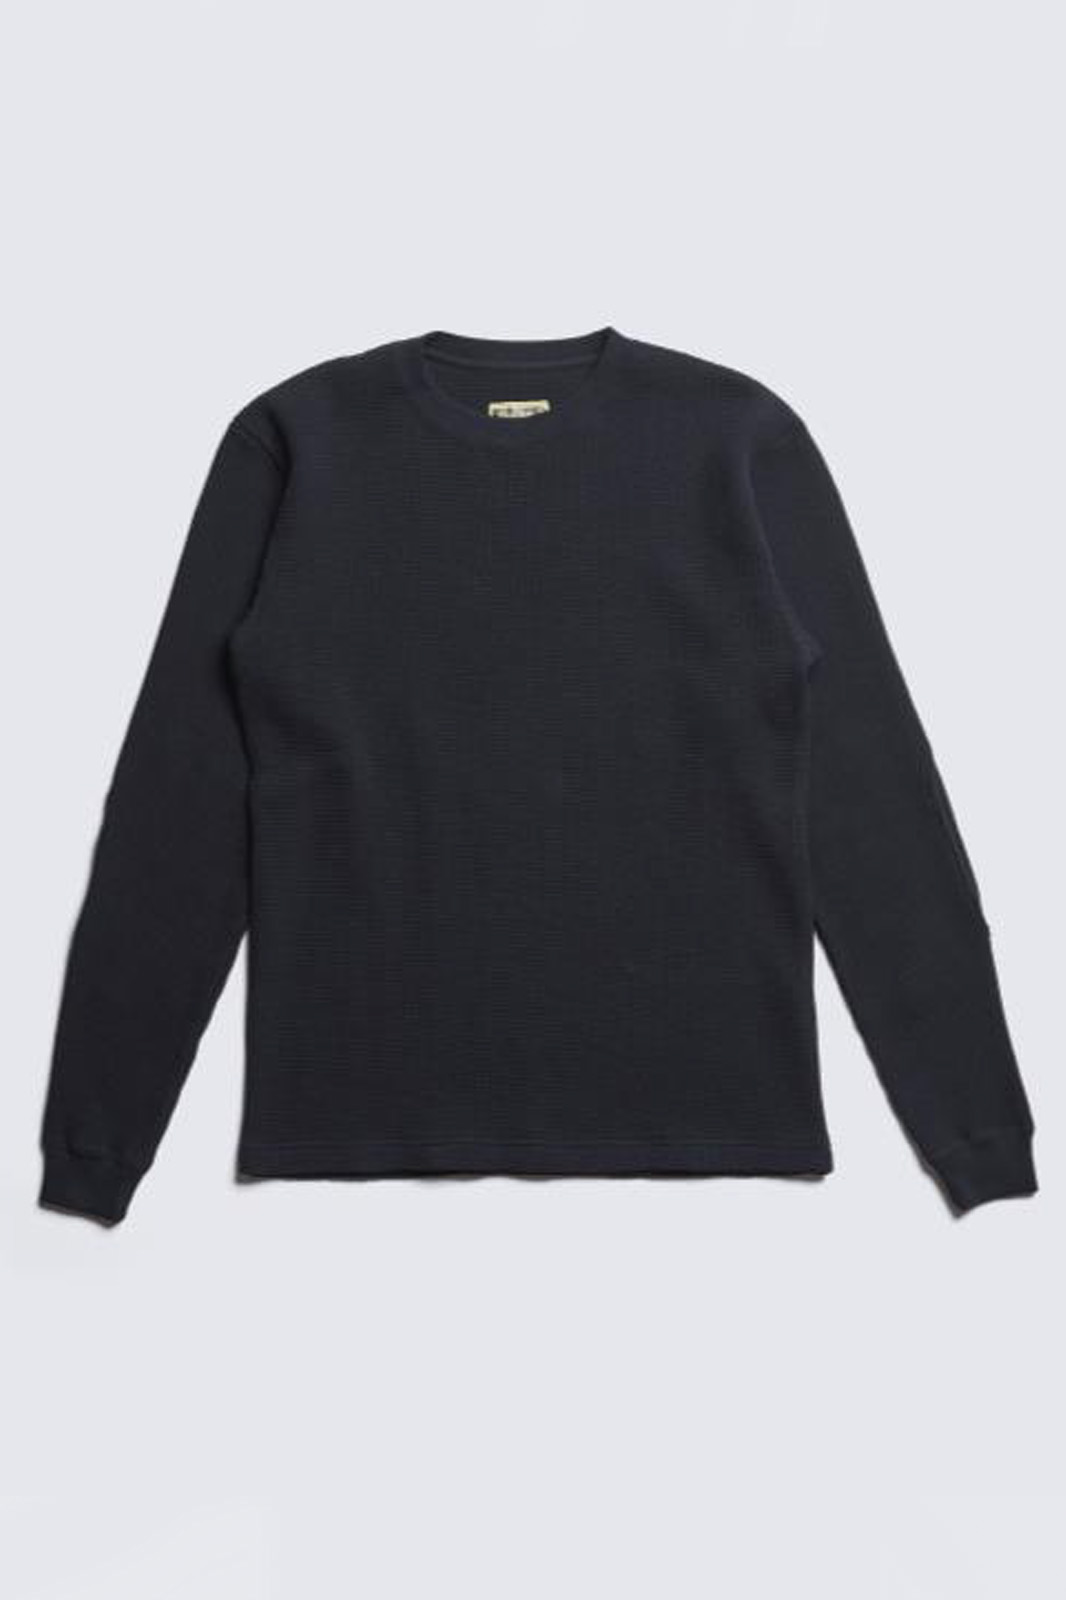 ADDICT CLOTHES JAPAN ACVM HEAVY WEIGHT WAFFLE CREW BLACK